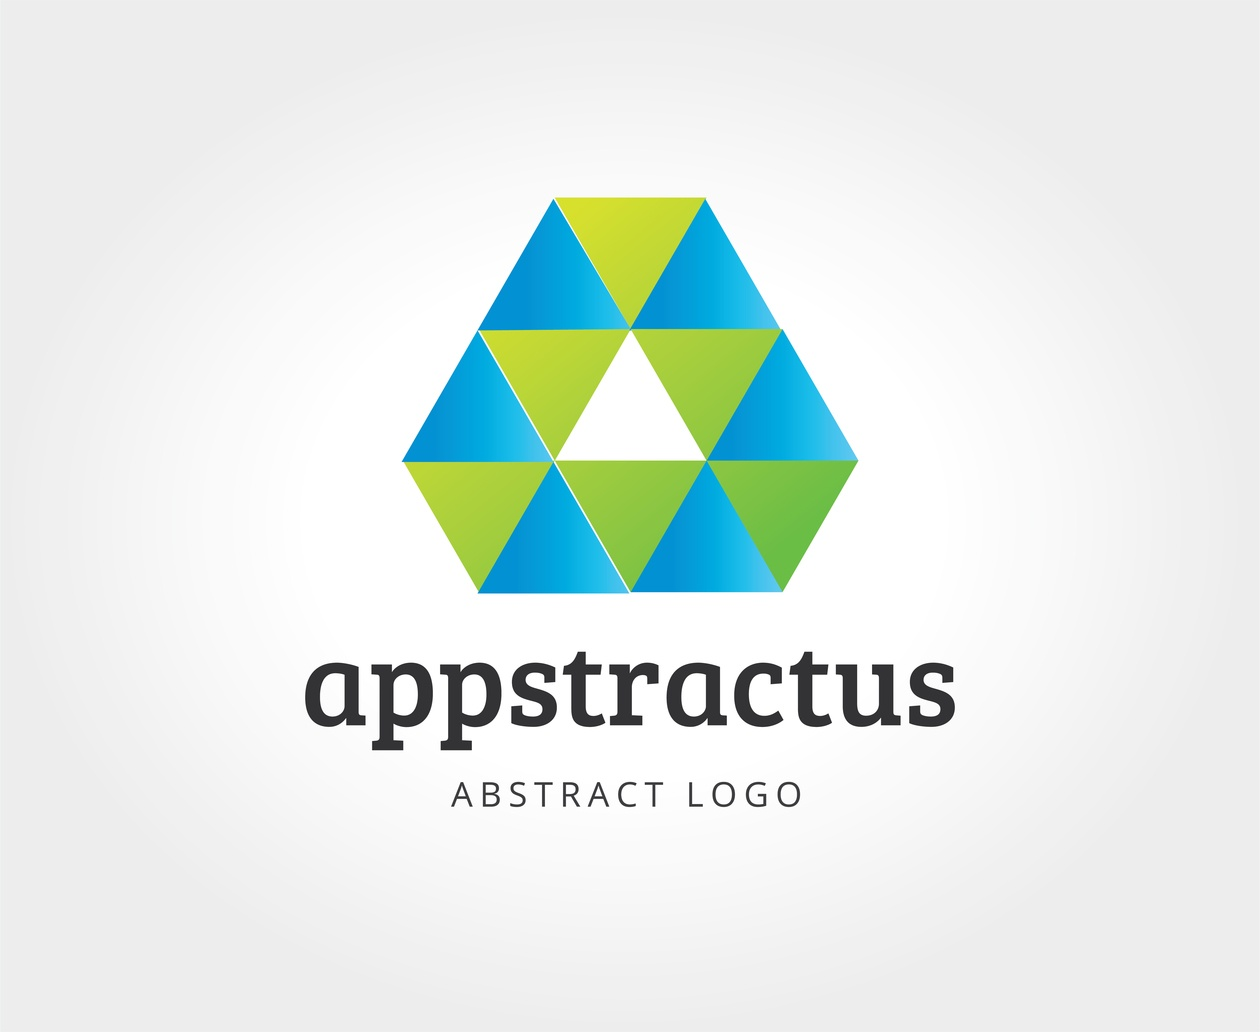 Abstract vector logo template for branding and design Photoshop brush